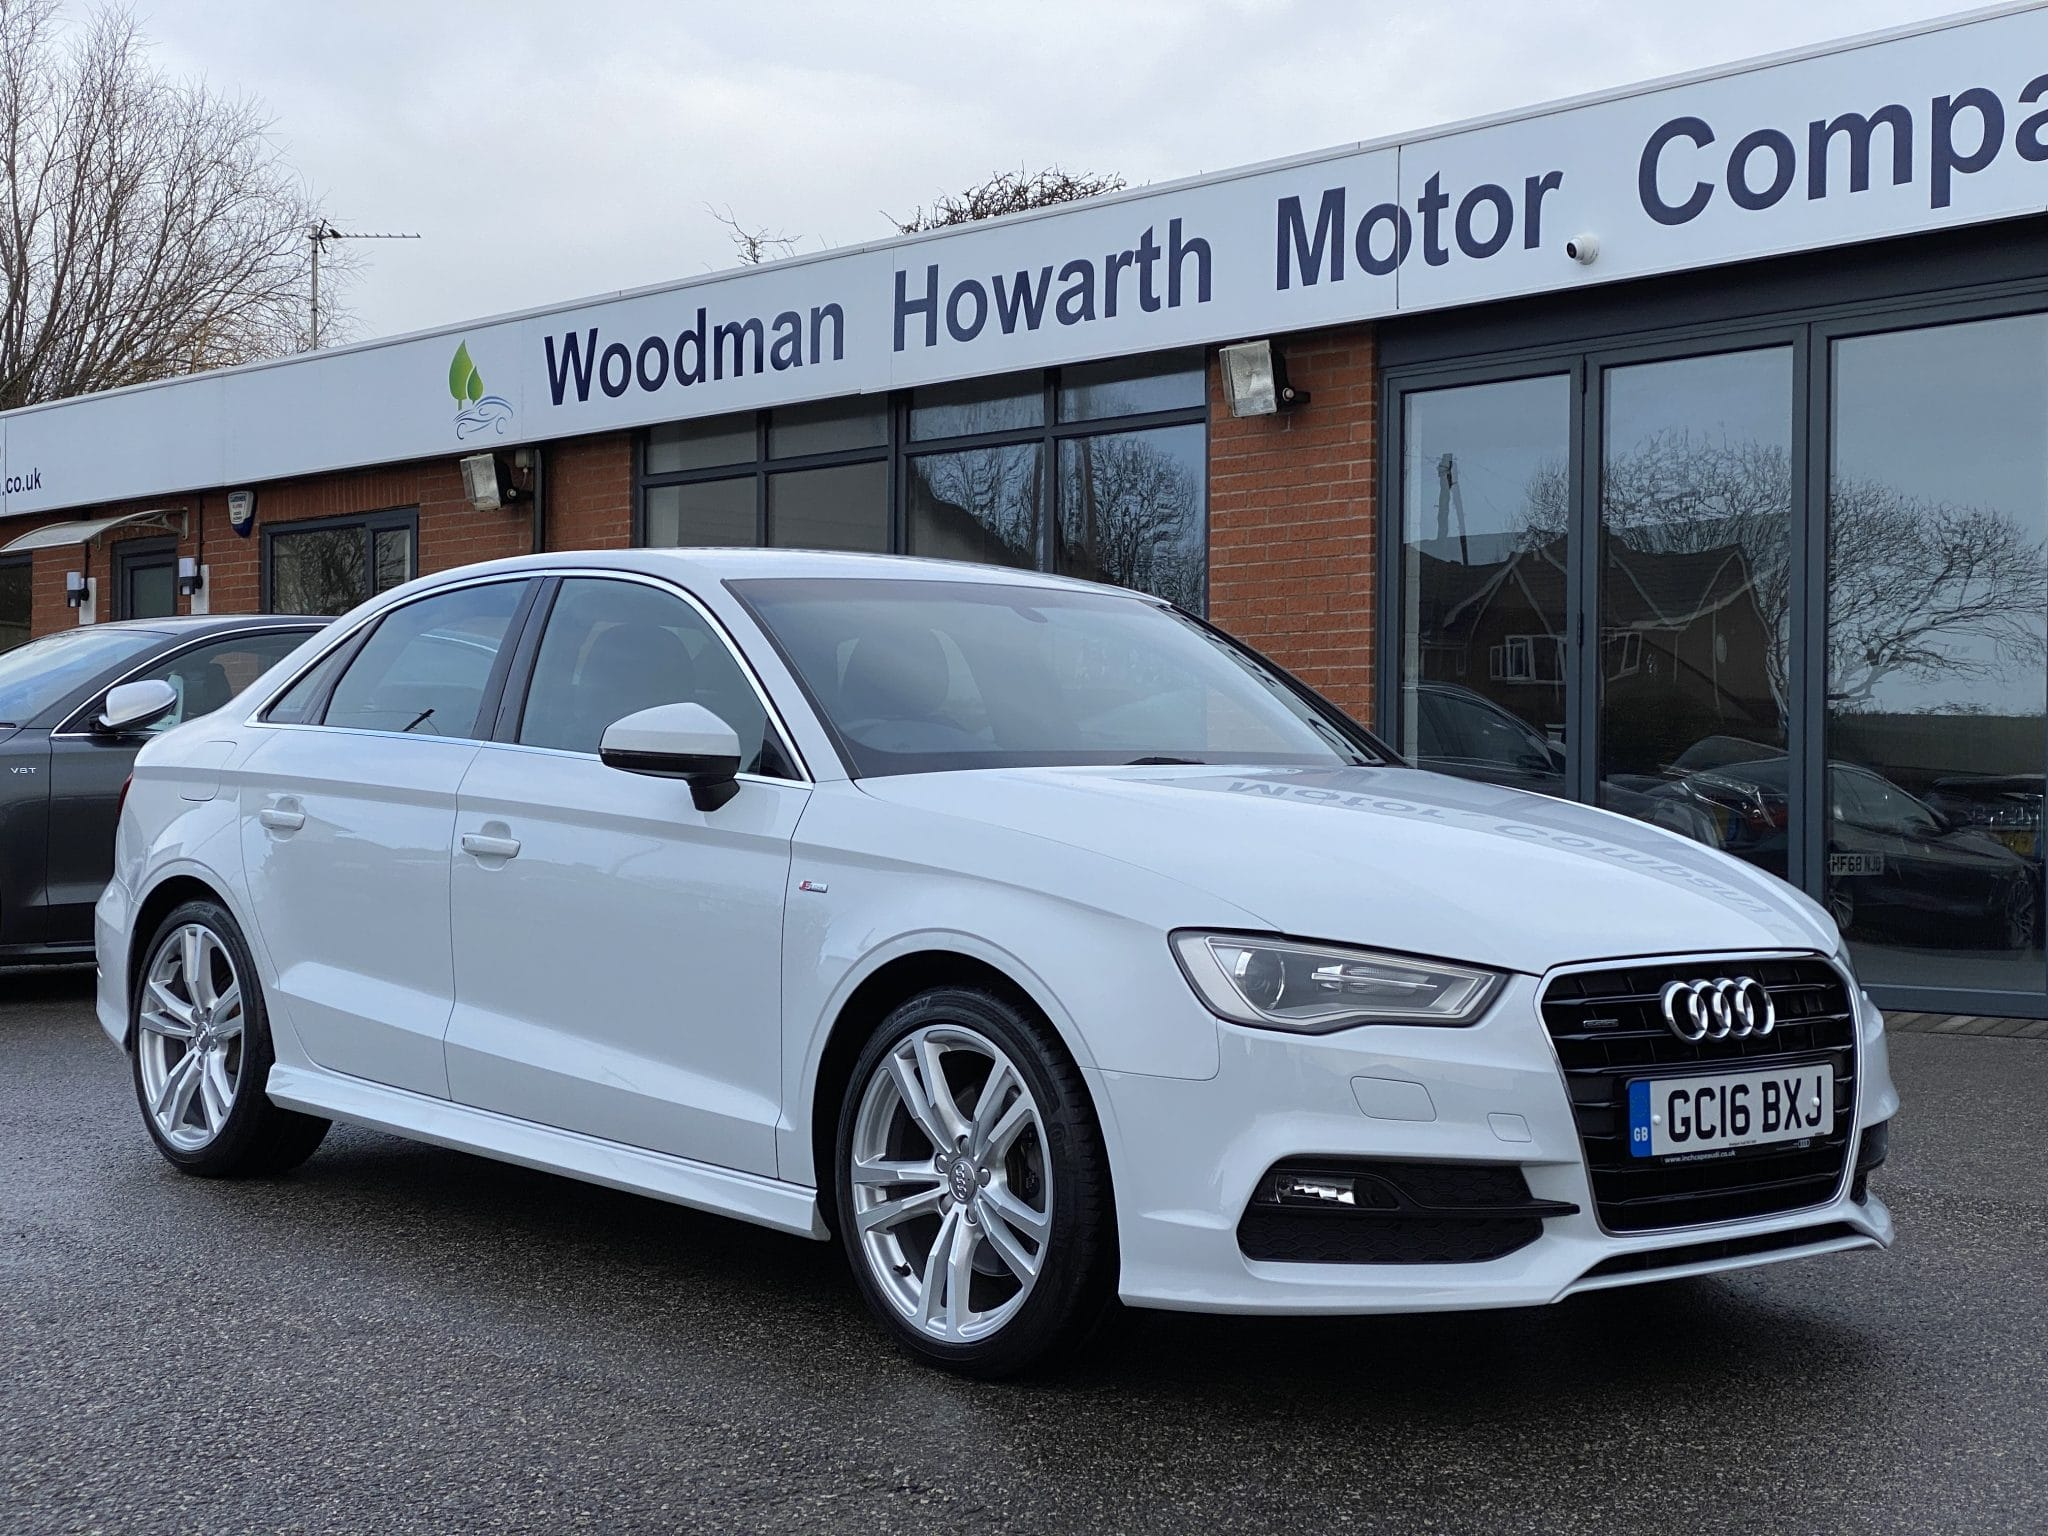 2016 16 AUDI A3 2.0TDI QUATTRO S LINE AUTO 184 BHP 4 DR SALOON 1 Prev Owner FSH Navigation Very Low Miles